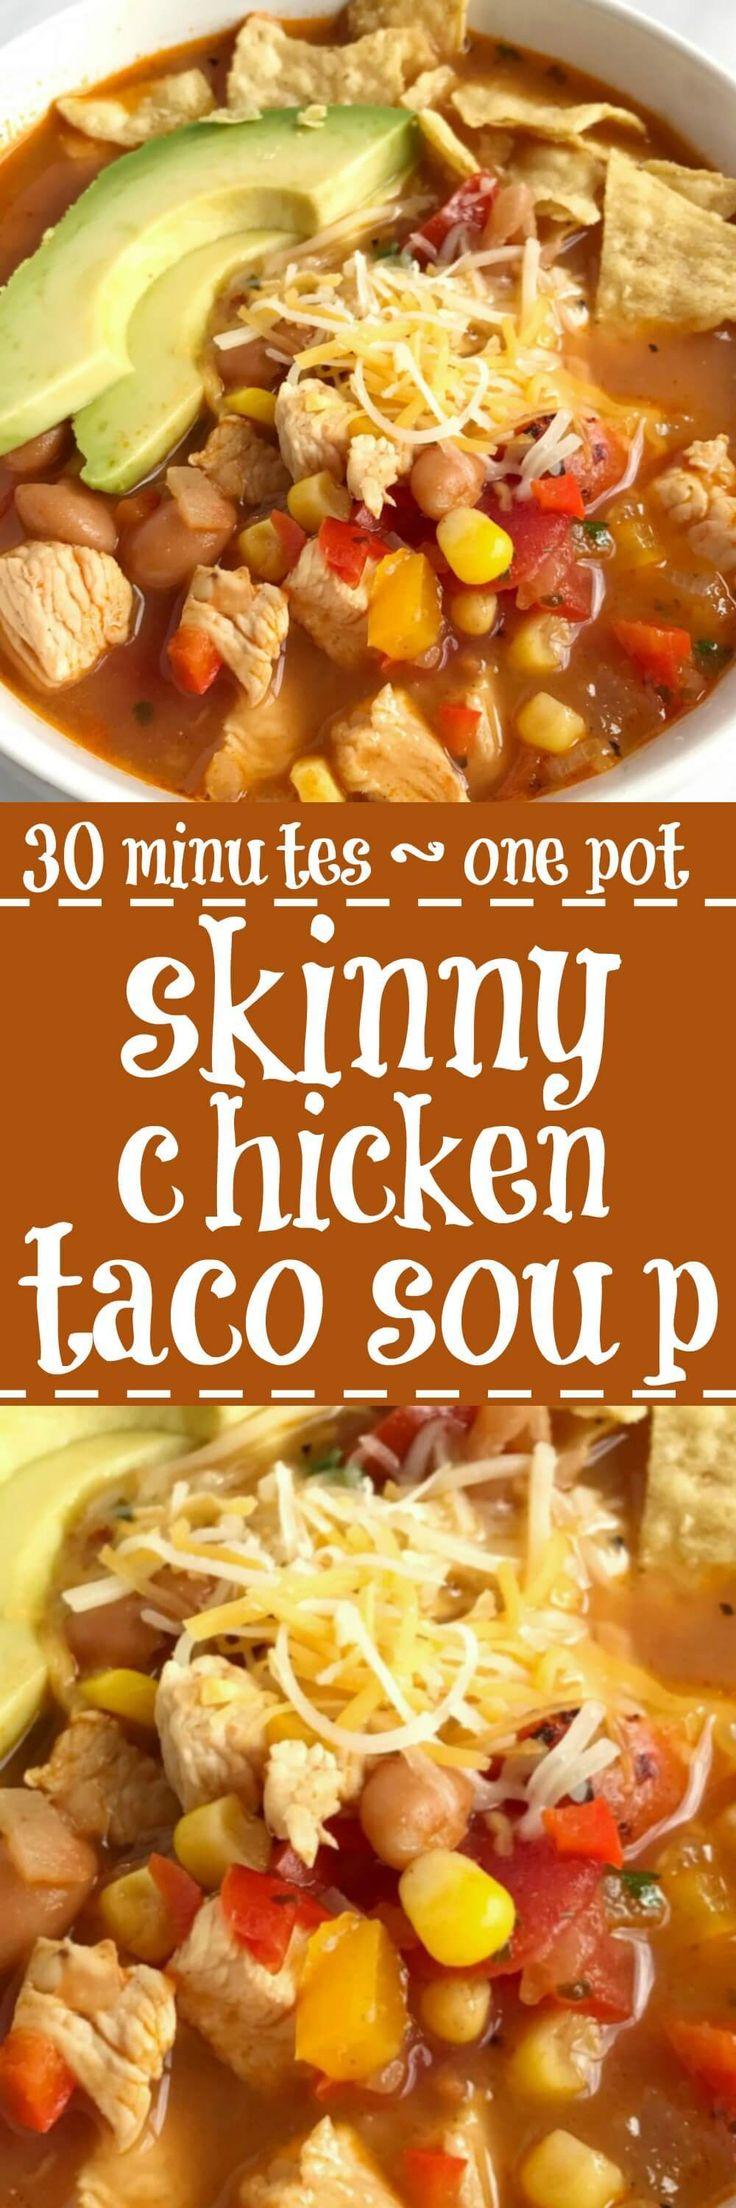 Skinny chicken taco soup only takes 30 minutes to have on the dinner table and it's all cooked in just one pot! Get a healthy, delicious, and comforting dinner on the table in record time and with hardly any dishes. The leftovers make a great lunch for the next day | togetherasfamily.com